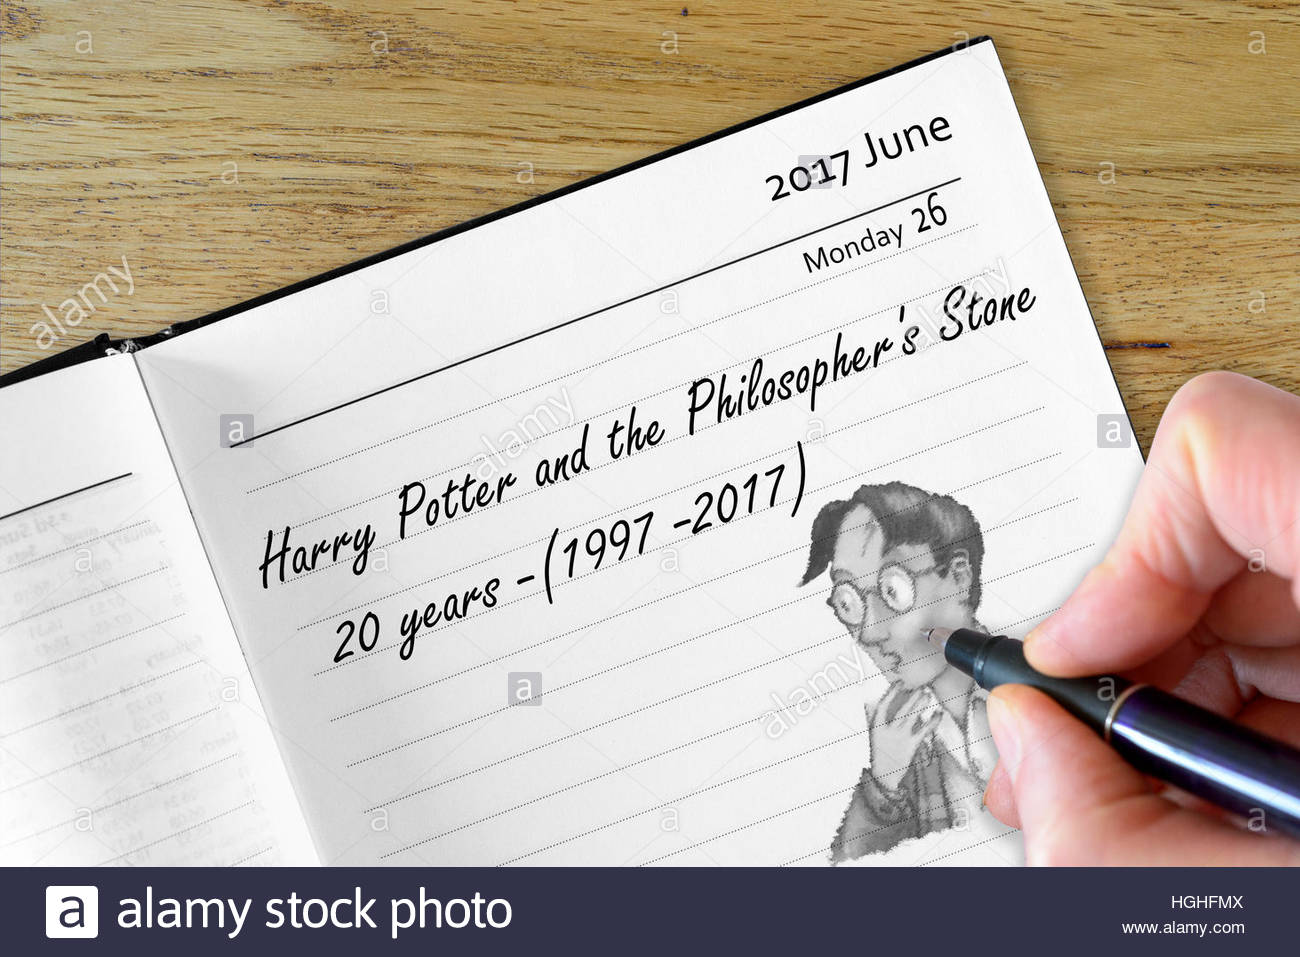 Harry Potter 20 year anniversary recorded on a diary page - Stock Image